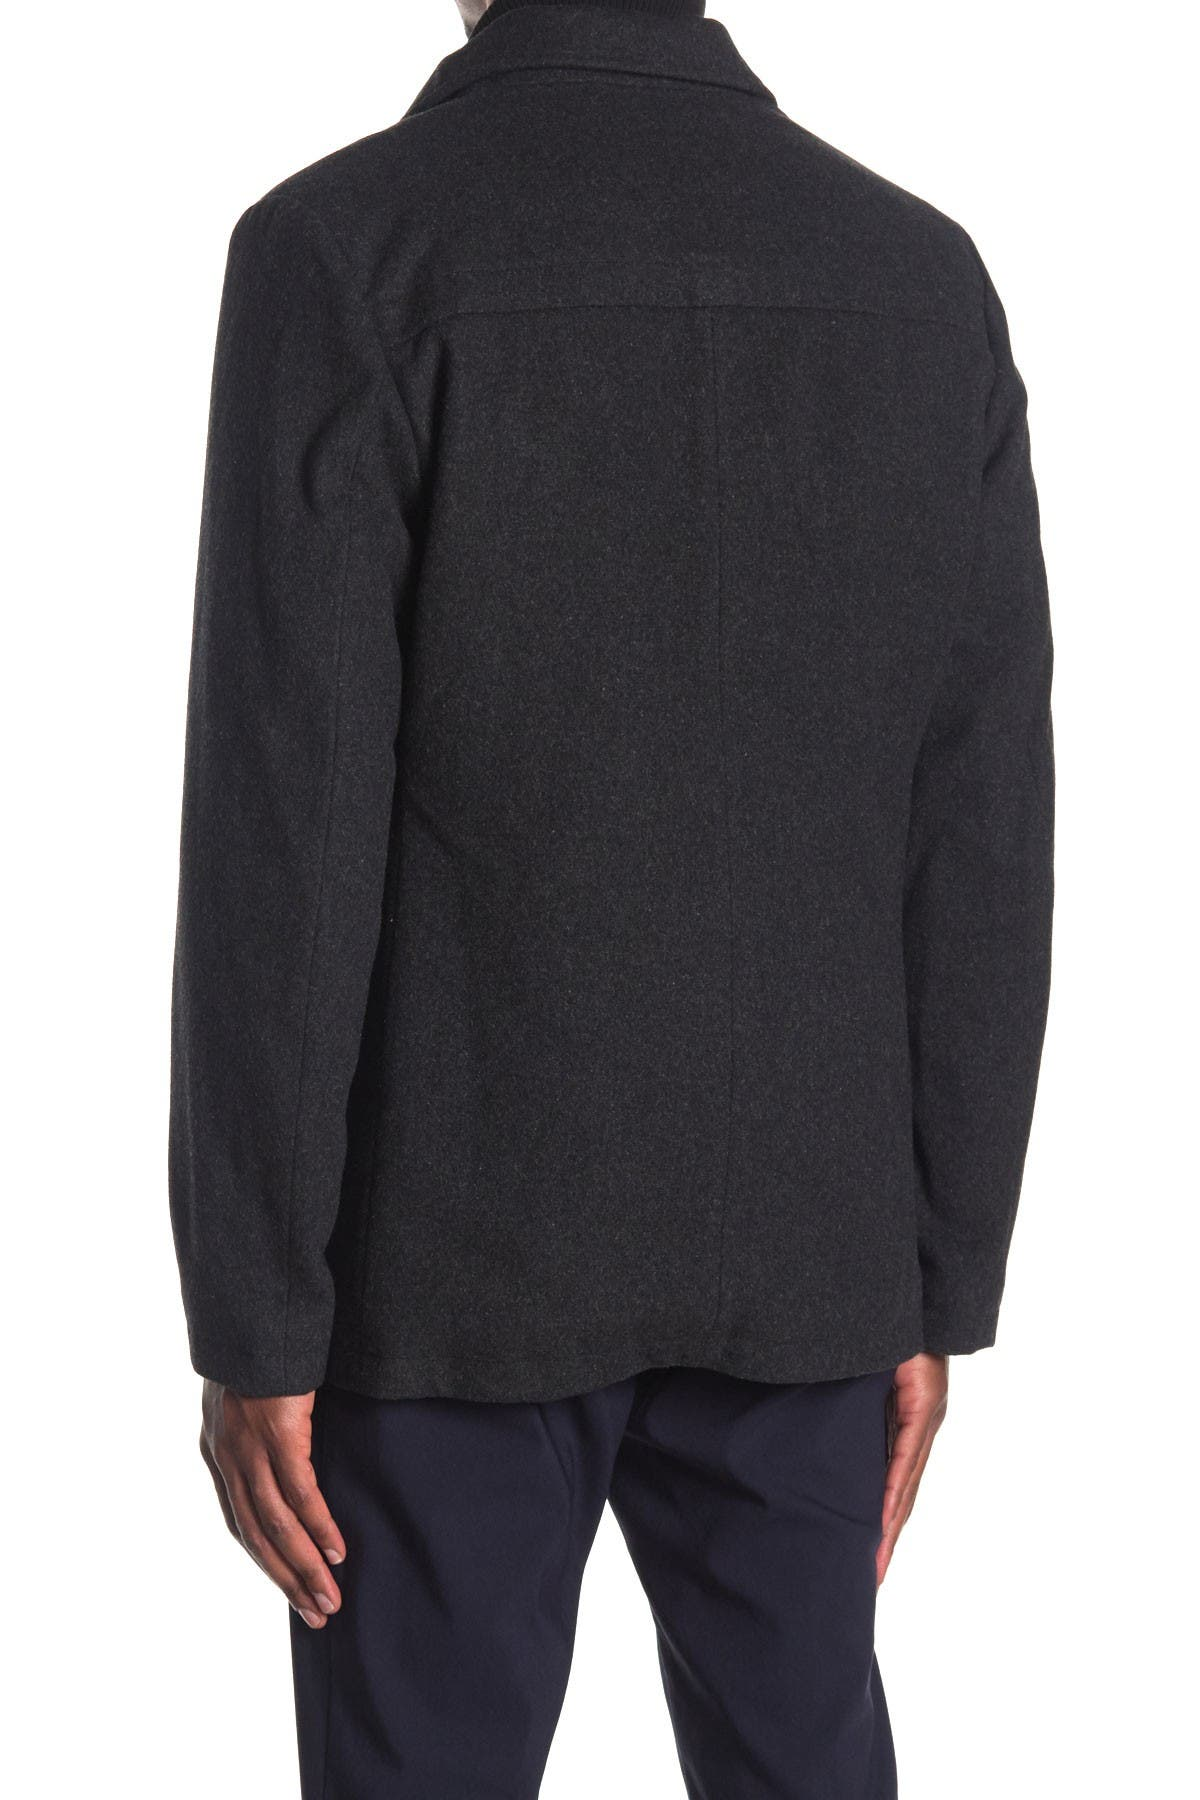 Image of SOUL OF LONDON Wool Blend Button Front Jacket